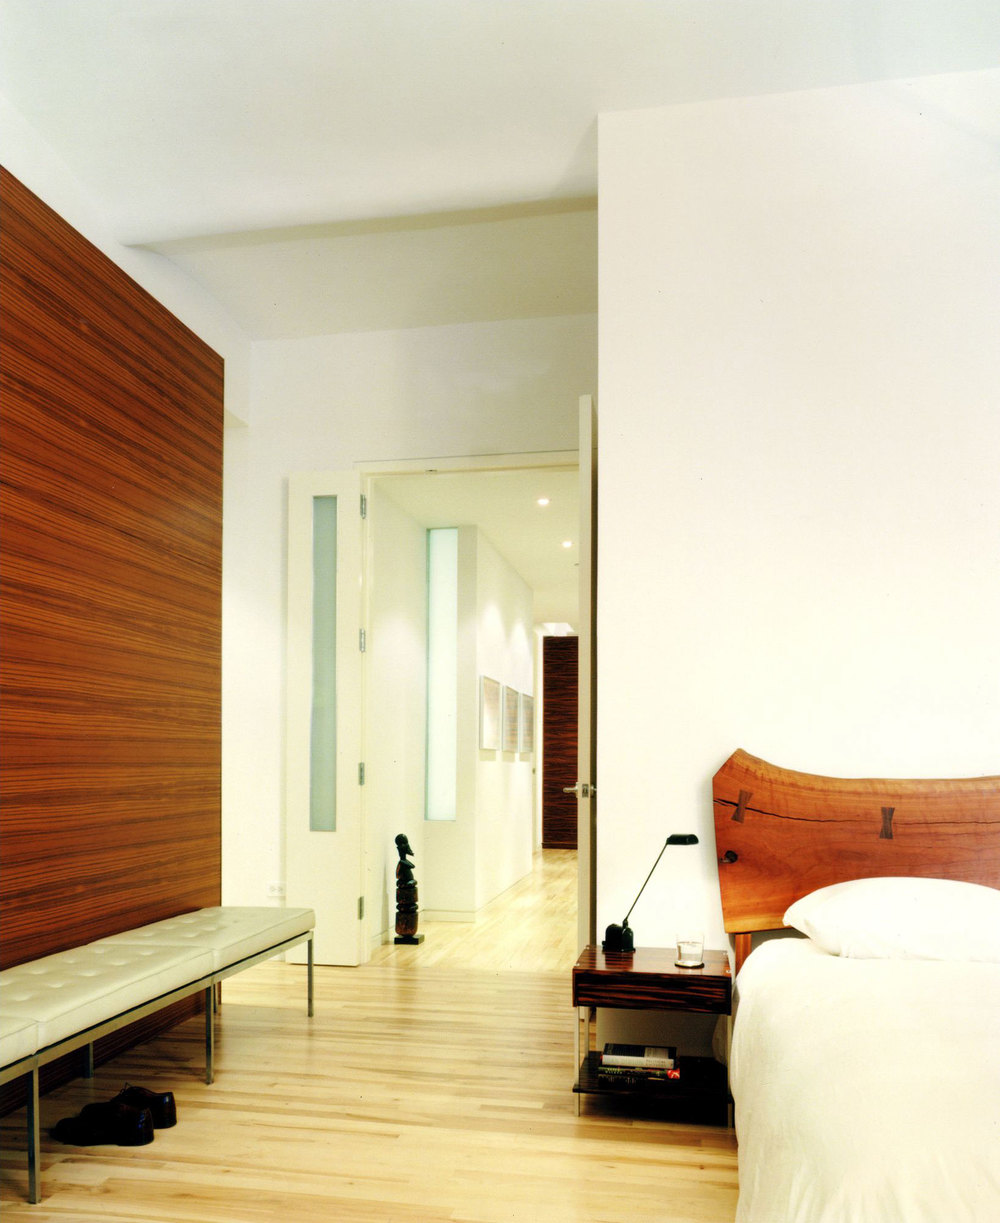 The teak wall of the bedroom works together with a white museum zephyr bench and George Nakashima cherry headboard.